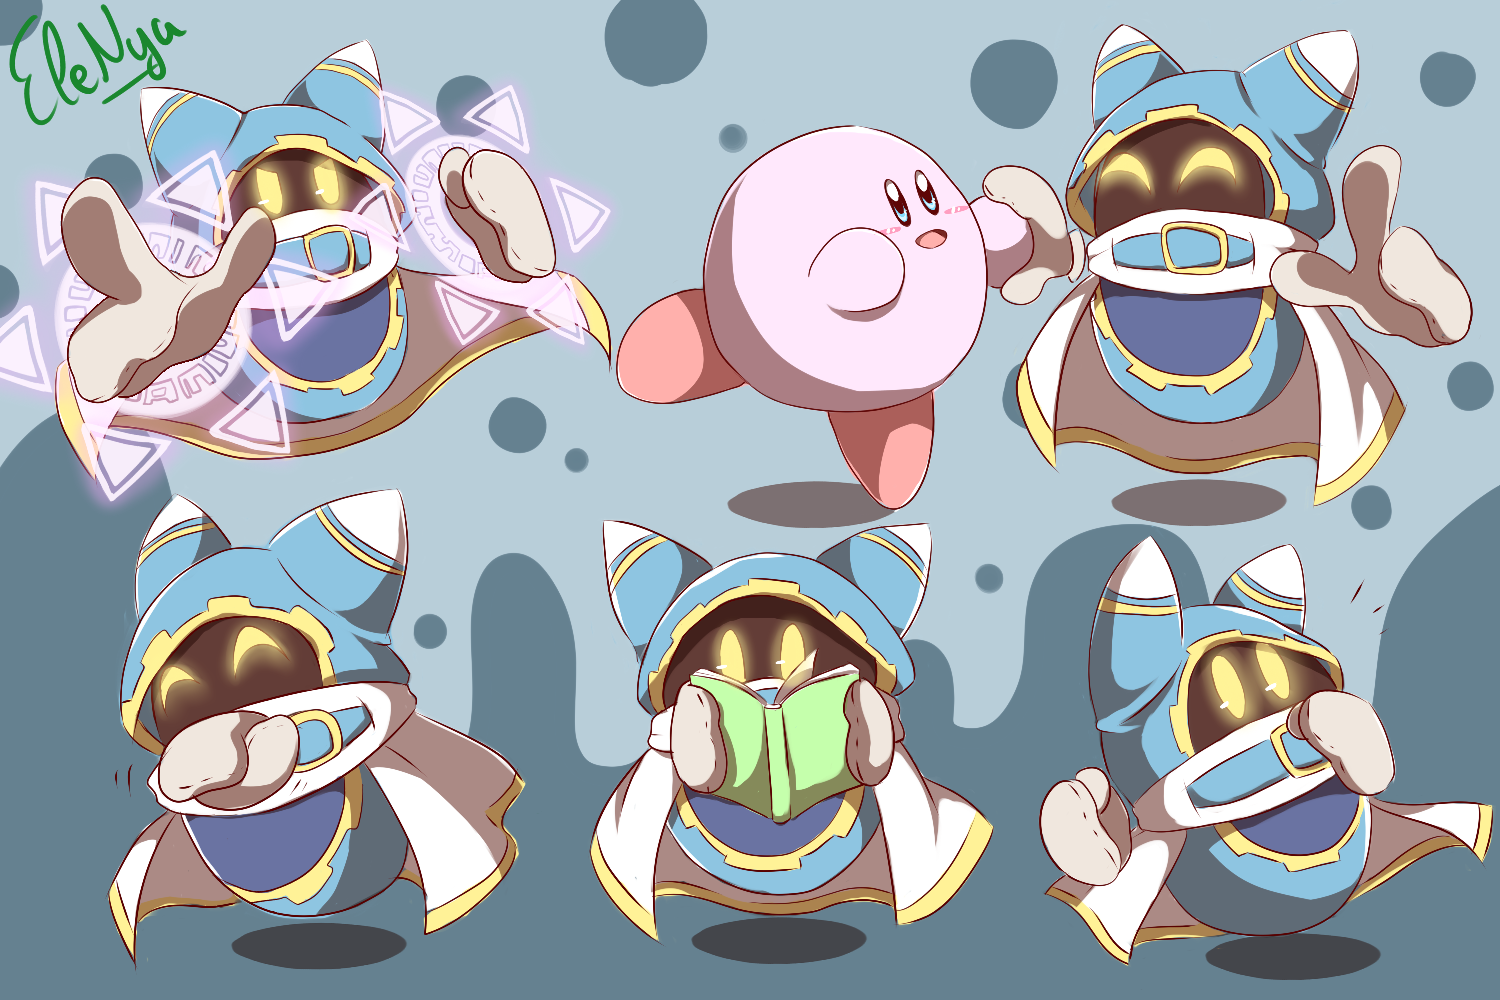 Nya Kirby Wallpaper: Magolors (color And Lineart Testing) By Ele-nya On DeviantArt